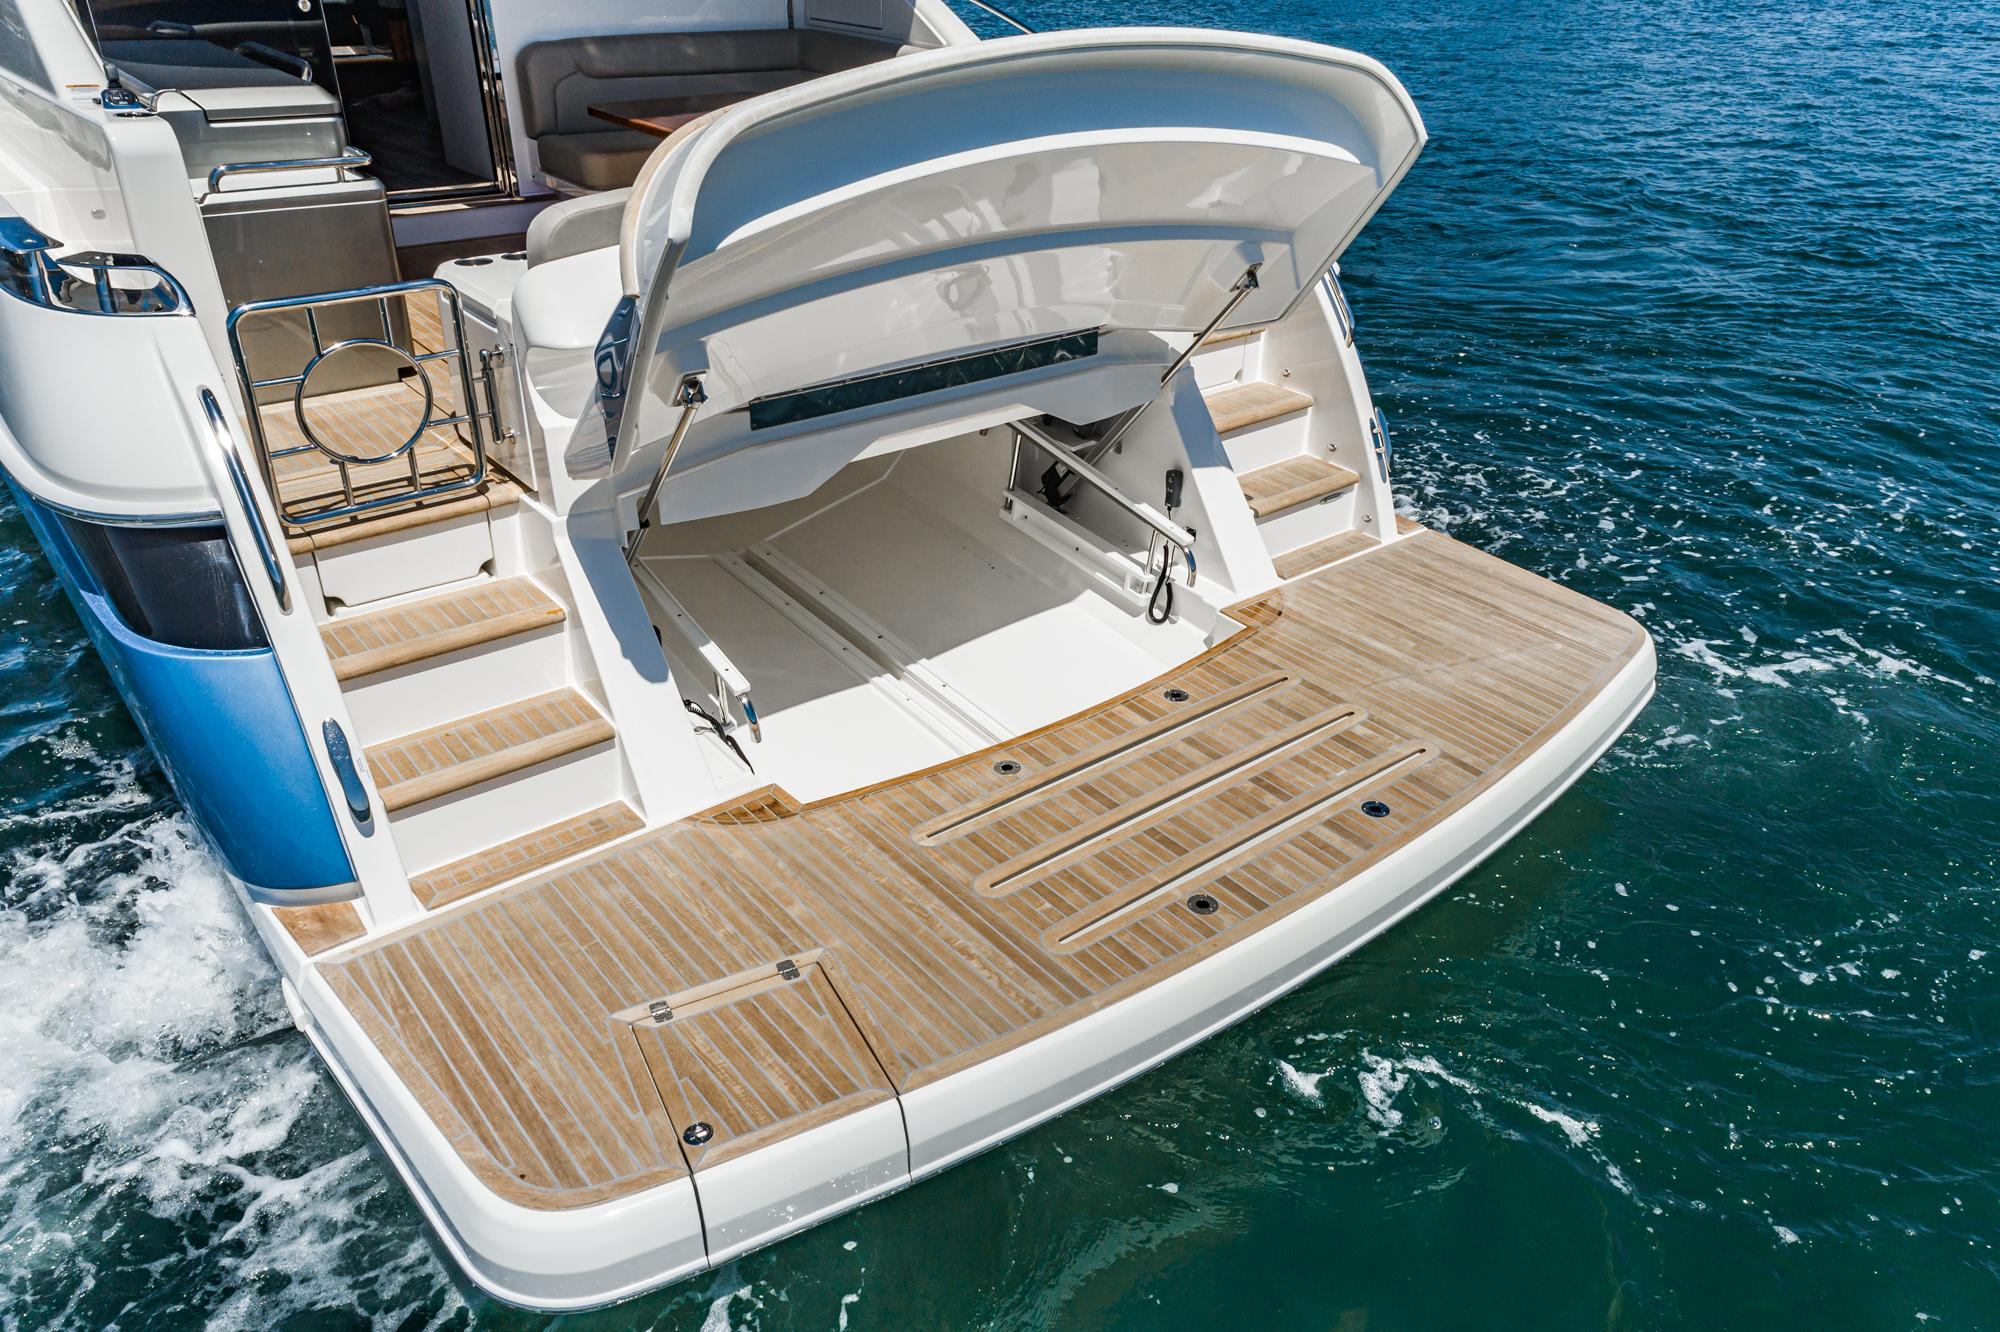 2021 Riviera 5400 Sport Yacht #R110 inventory image at Sun Country Coastal in Newport Beach